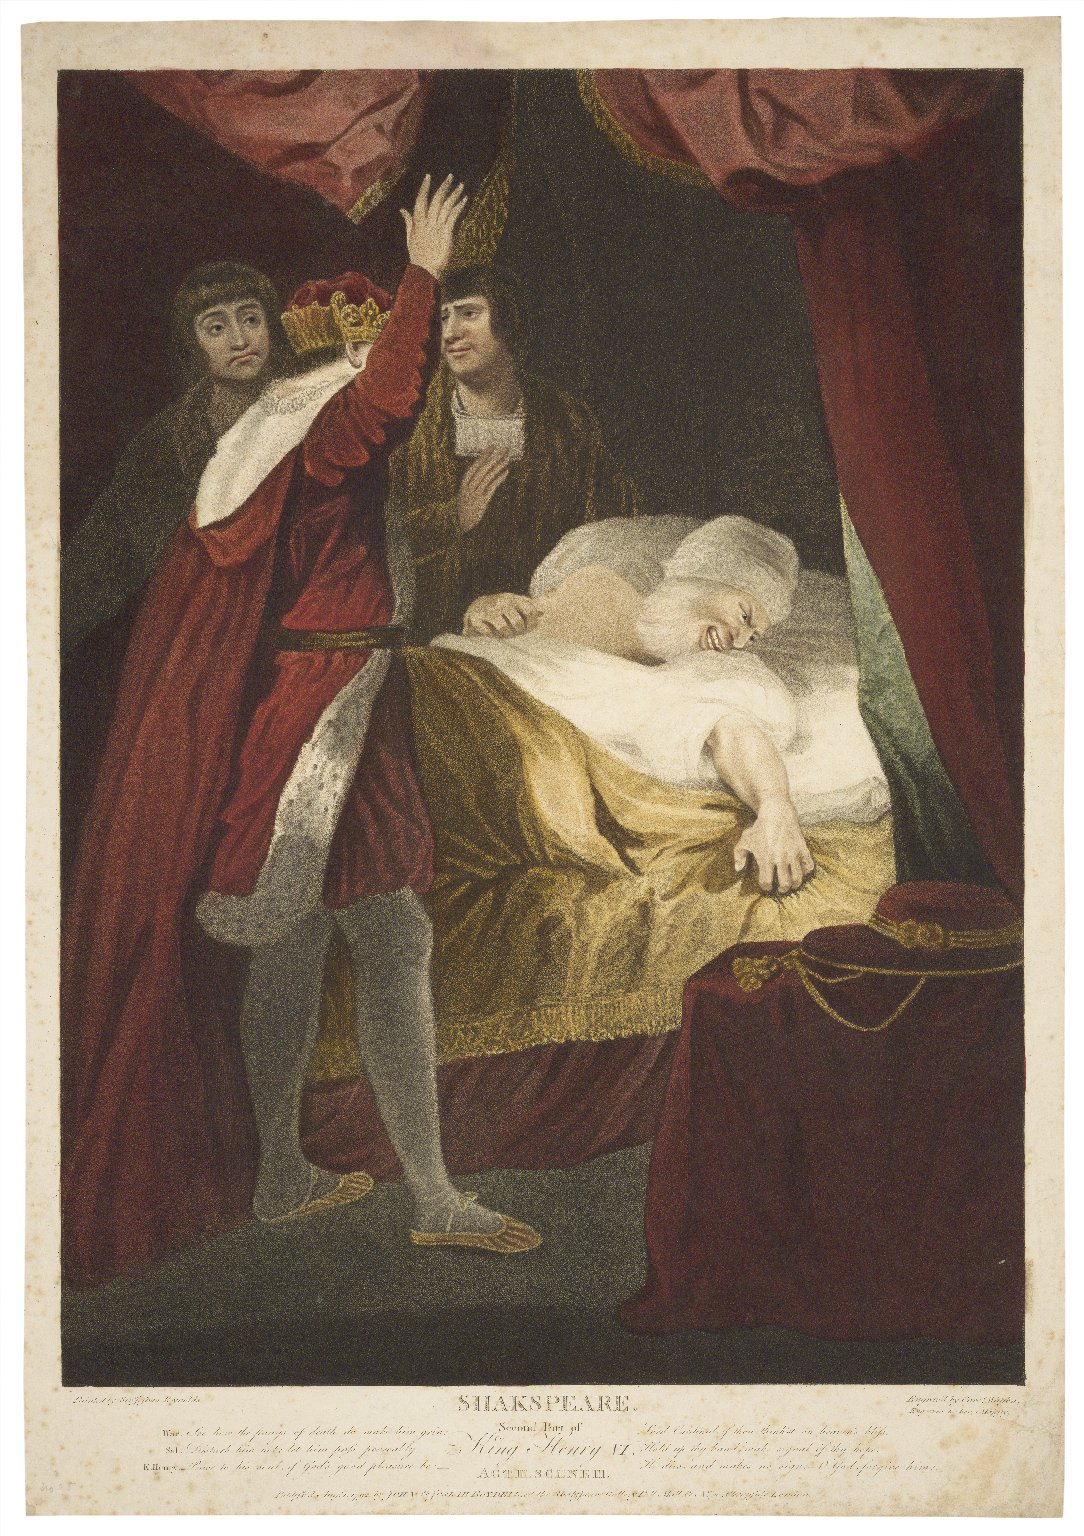 Second part of King Henry VI, act III, scene III ... [graphic] / painted by Sir Joshua Reynolds ; engraved by Caroe. Watson.